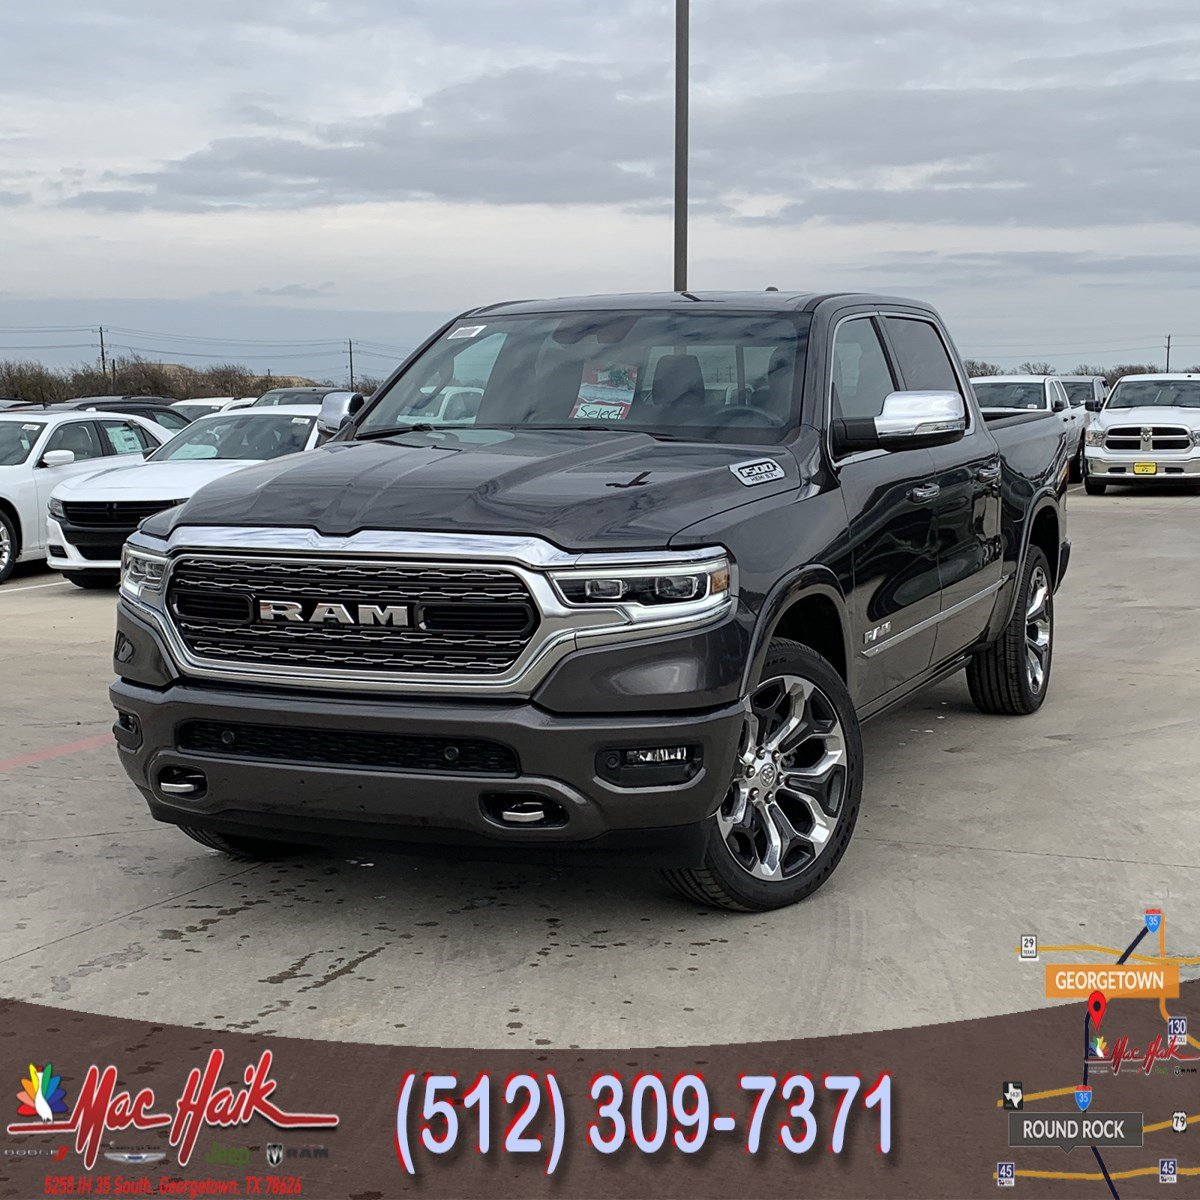 2019 Ram 1500: 2019 RAM All-New 1500 Limited Crew Cab For Sale In Austin